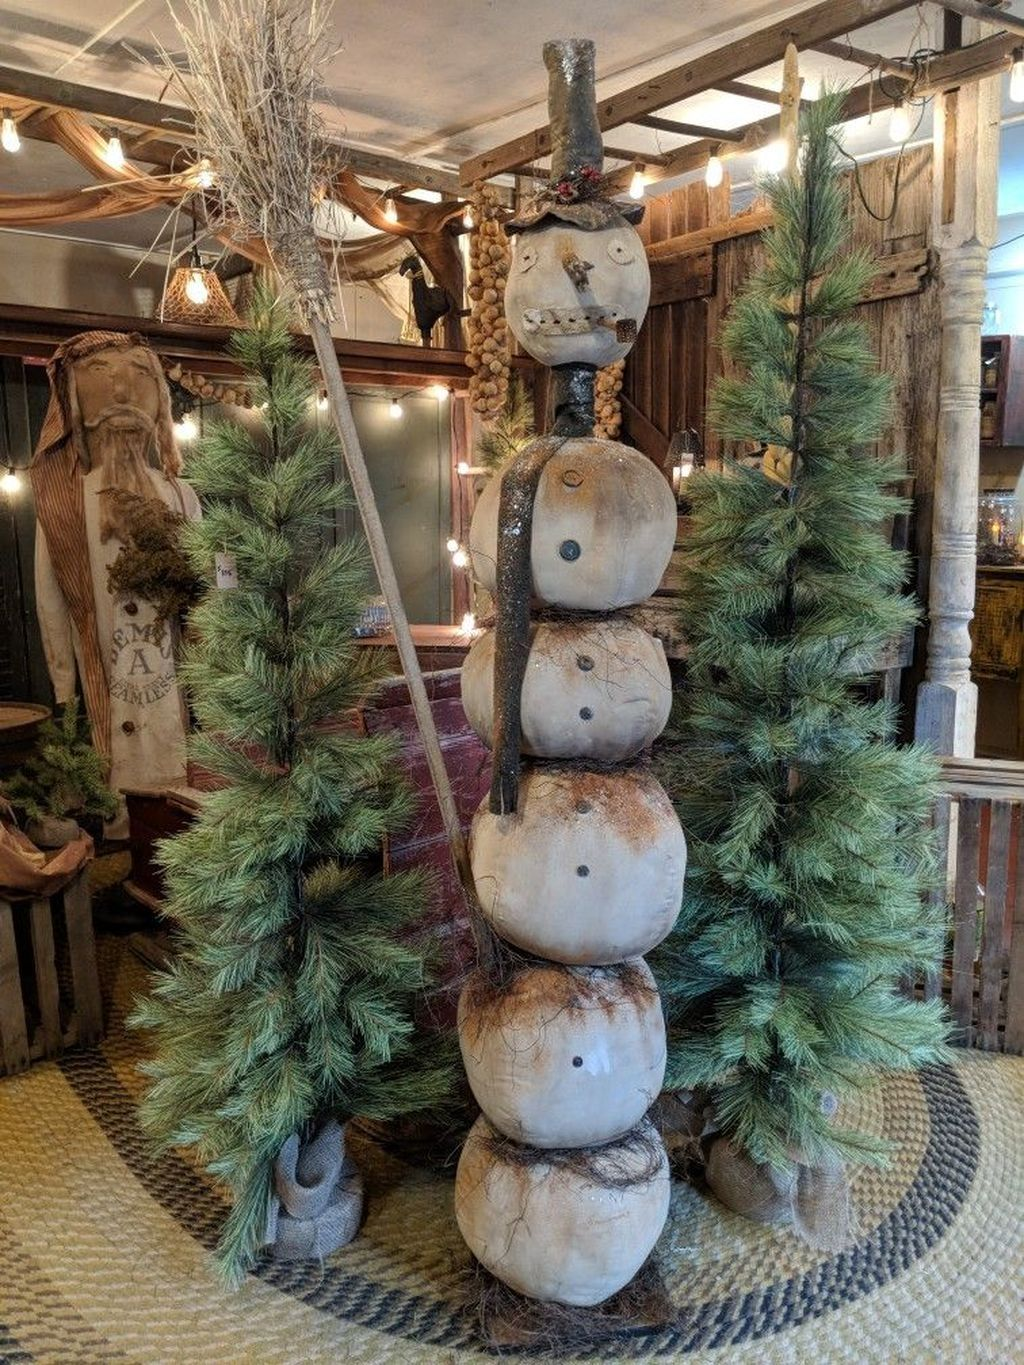 39 Superb Primitive Country Christmas Trees Ideas To Copy Right Now Primitive Christmas Tree Primitive Decorating Country Primitive Country Christmas